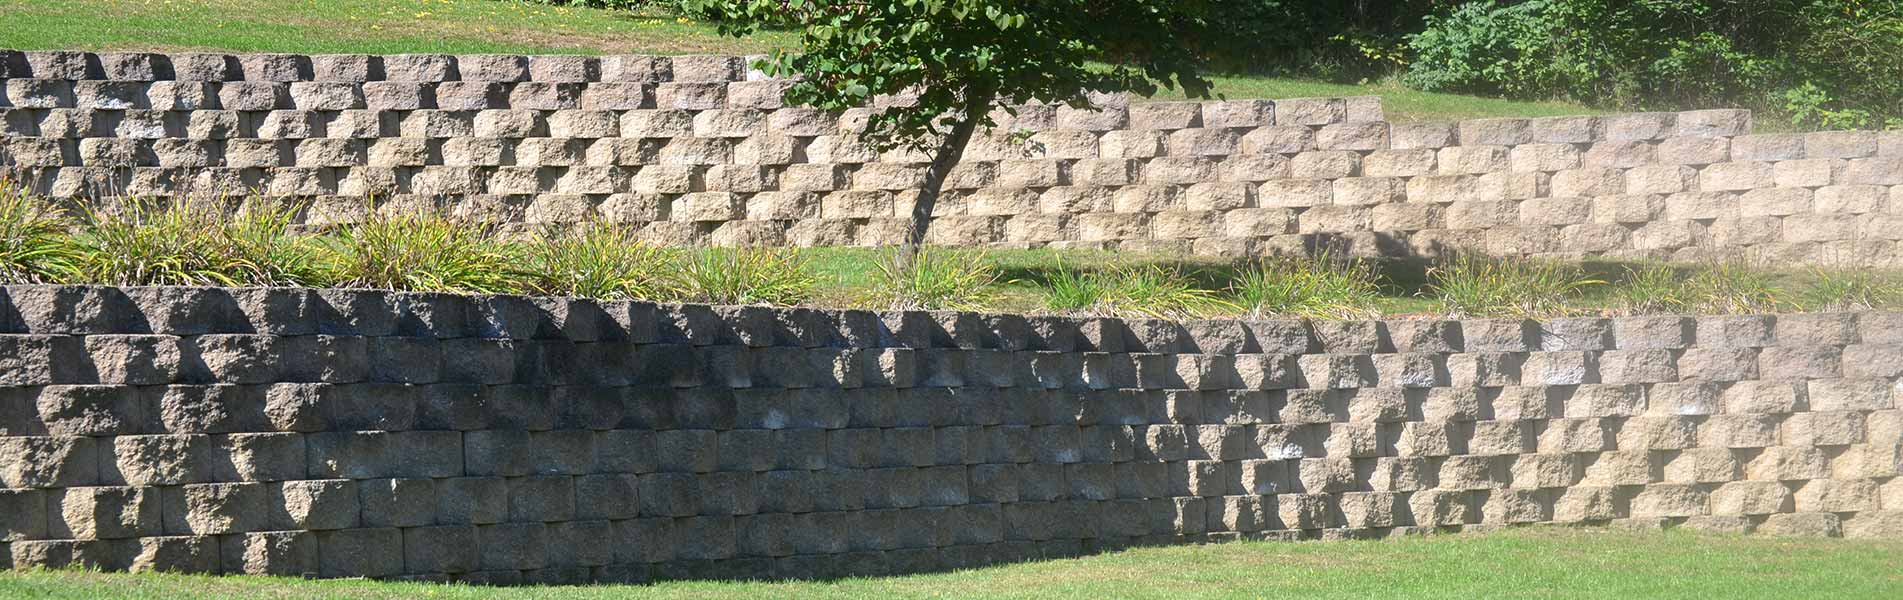 Retaining Wall Installation Services by B&C Pavers & Landscaping Inc.